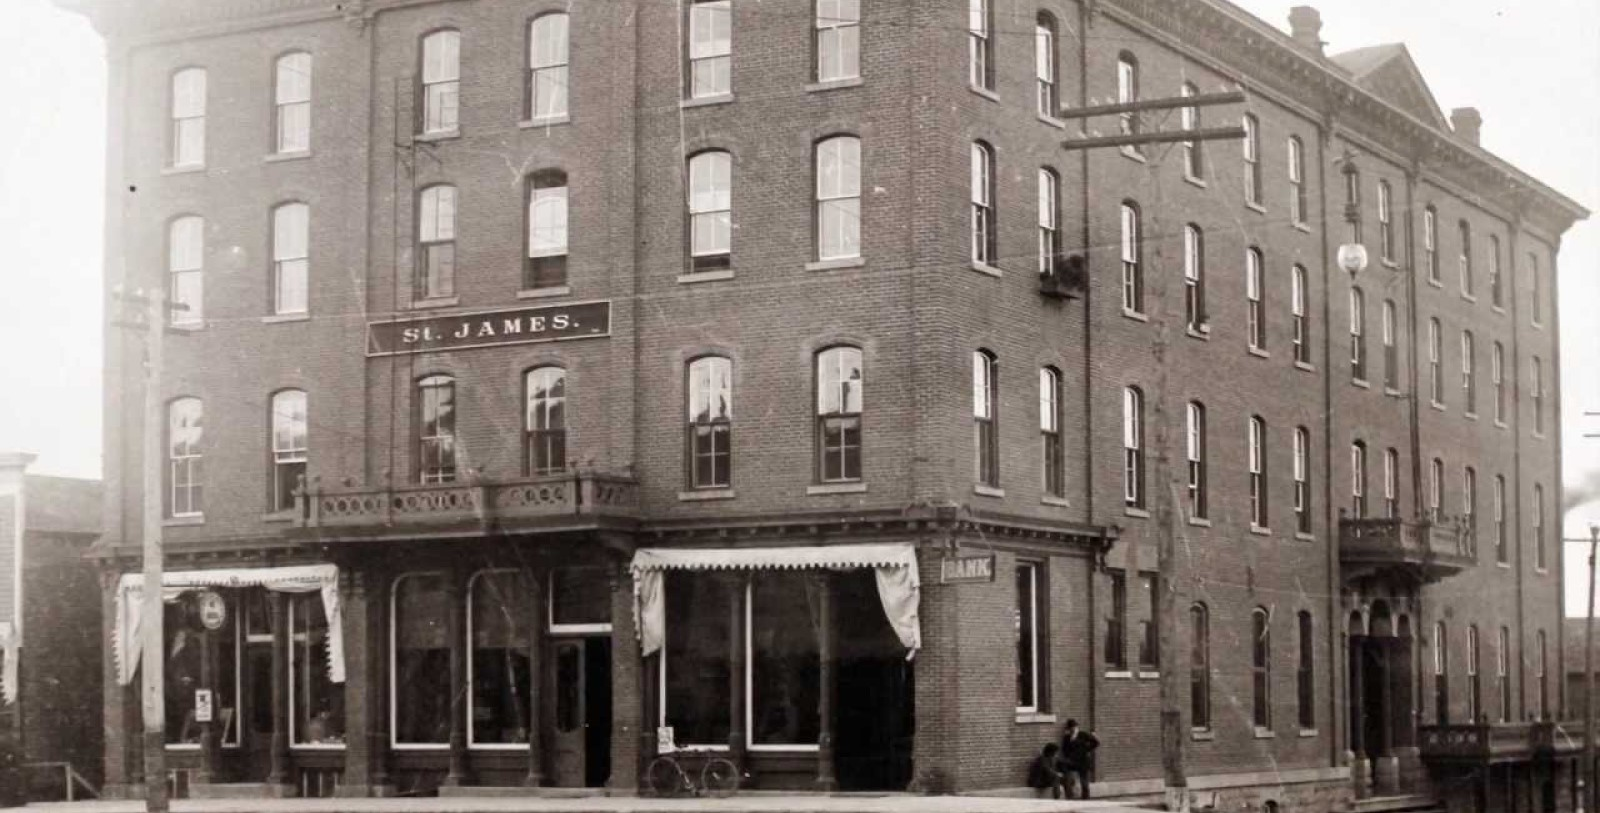 Historical Image of Exterior Street View, St. James Hotel, 1875, Member of Historic Hotels of America, in Red Wing, Minnesota.